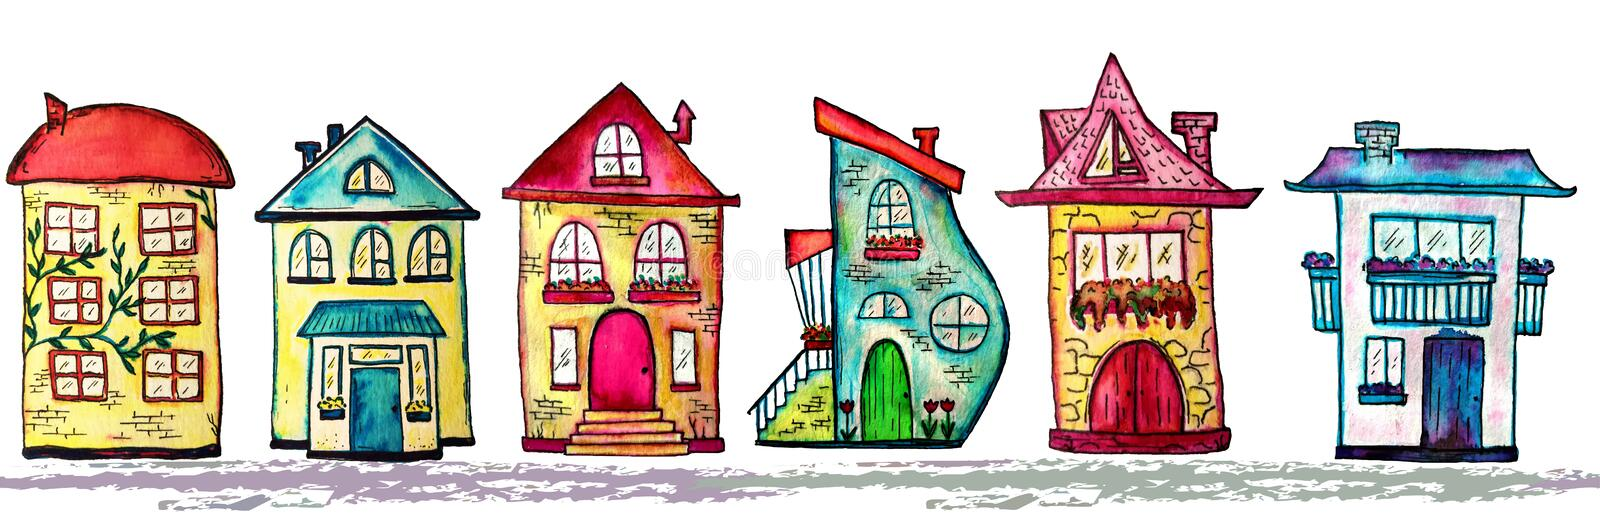 Watercolor city seamless line. Cute houses background. Raster illustration. Watercolor city seamless line. Cute colorful houses background. Raster illustration stock illustration